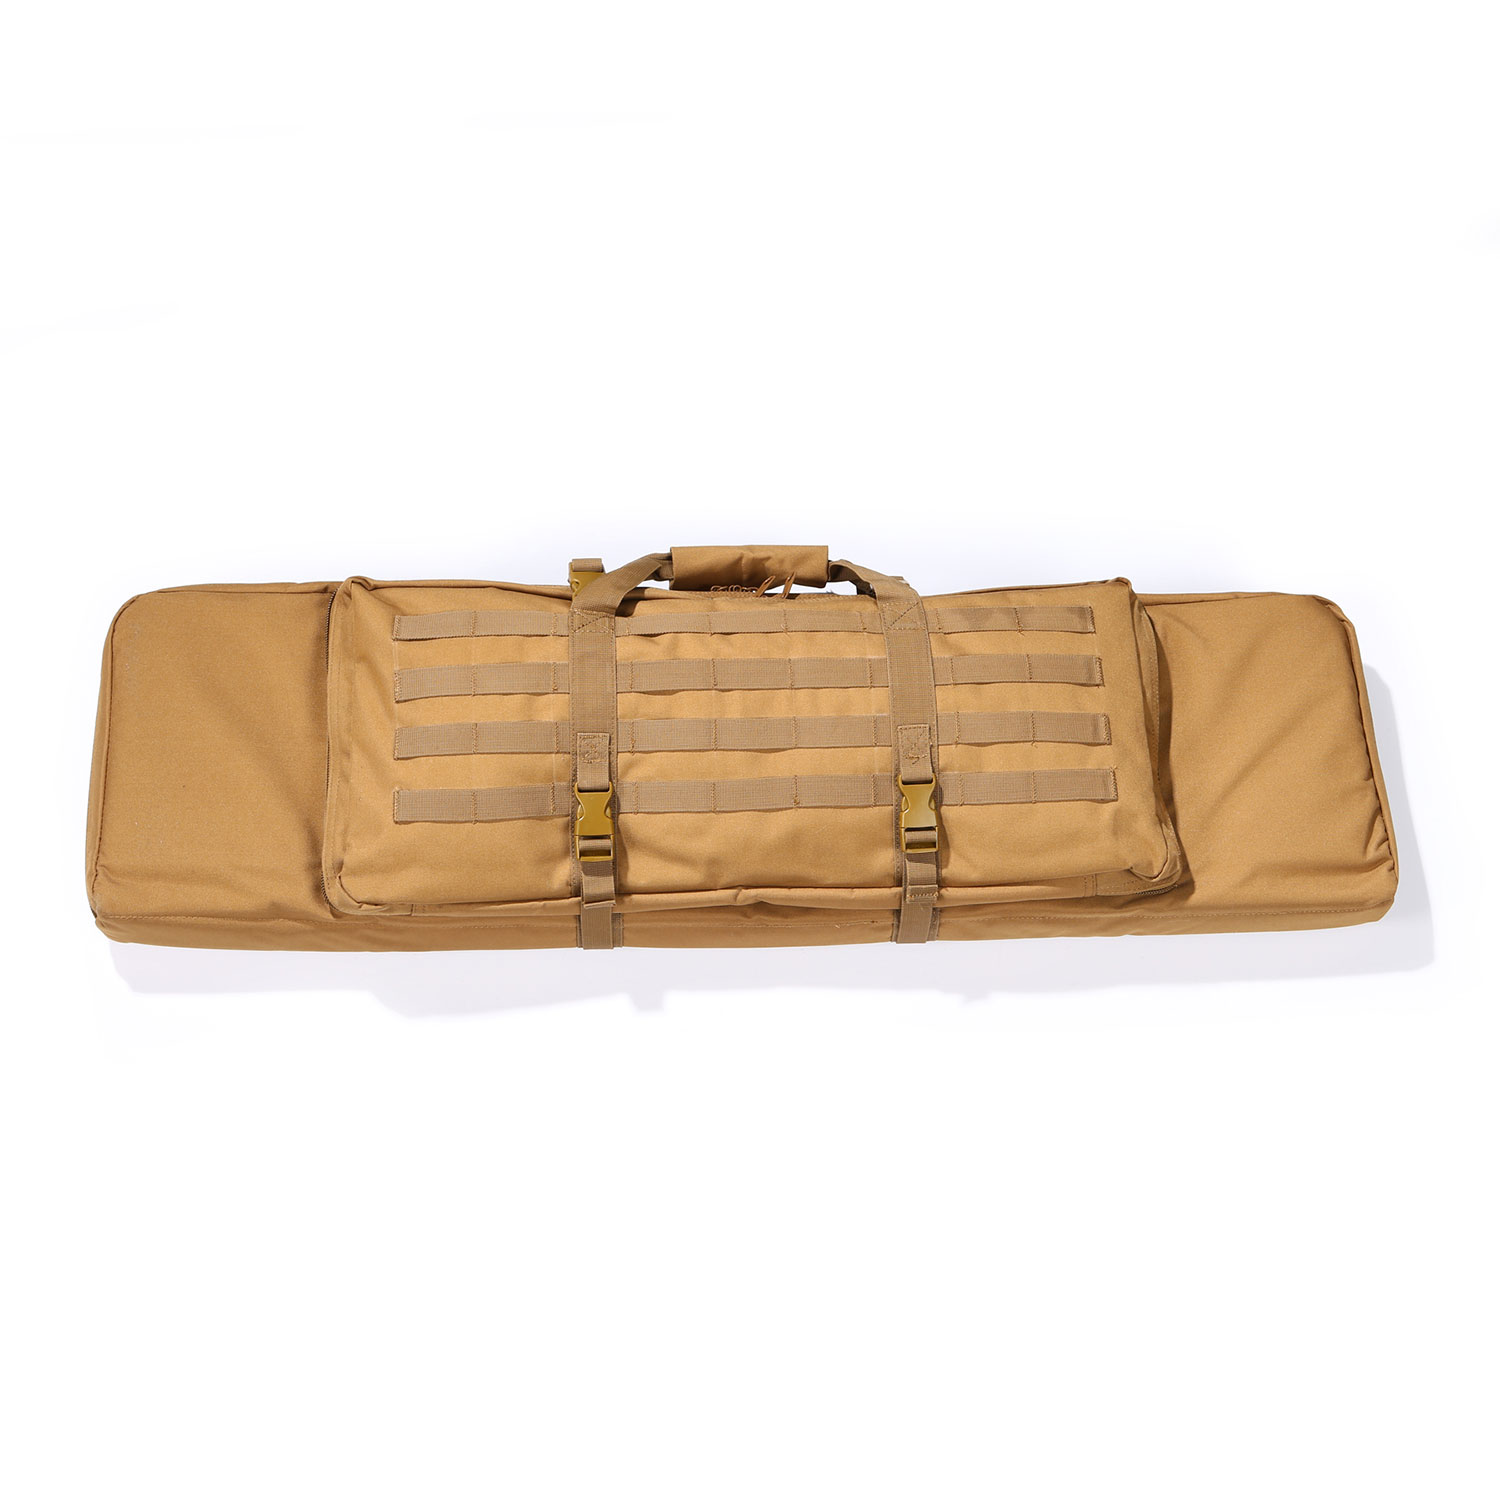 5ive Star Gear PWC-5S Multi-Weapon Gun Case